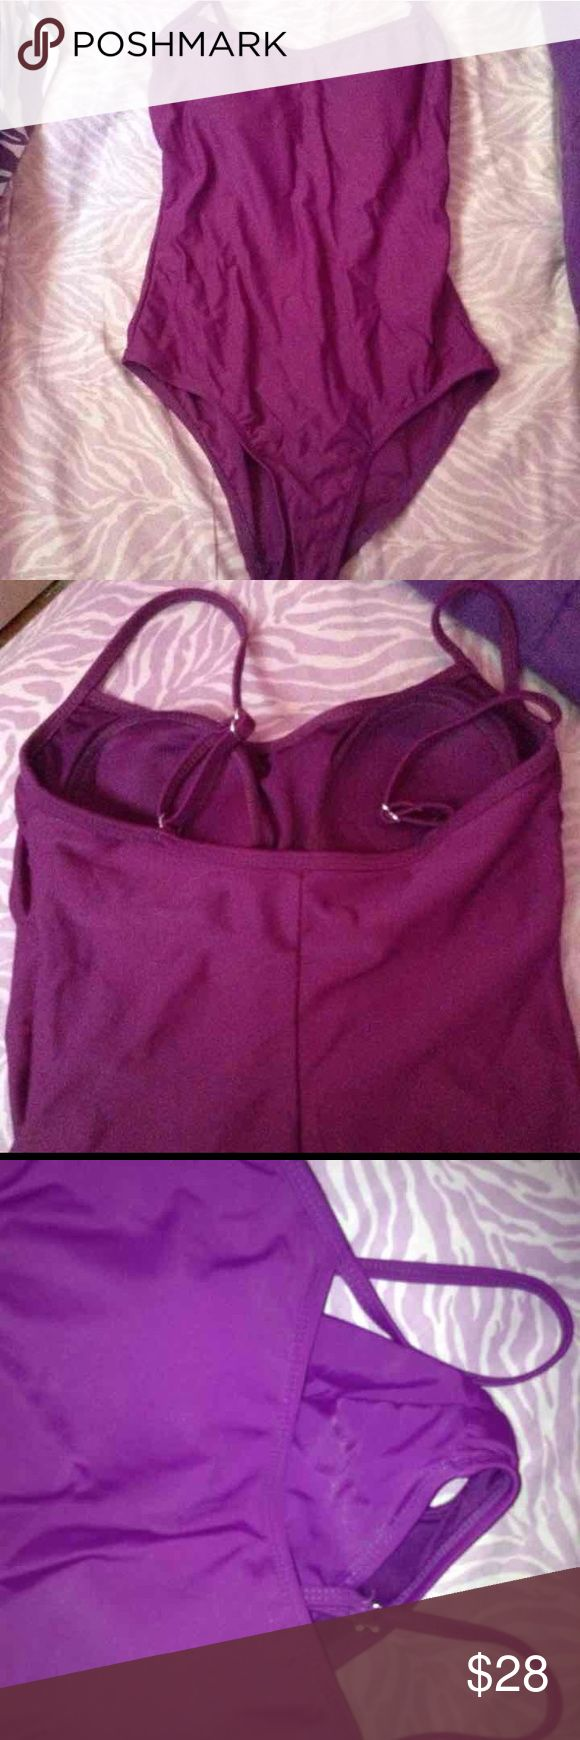 Purple one piece swimsuit Worn once, no rips Swim One Pieces